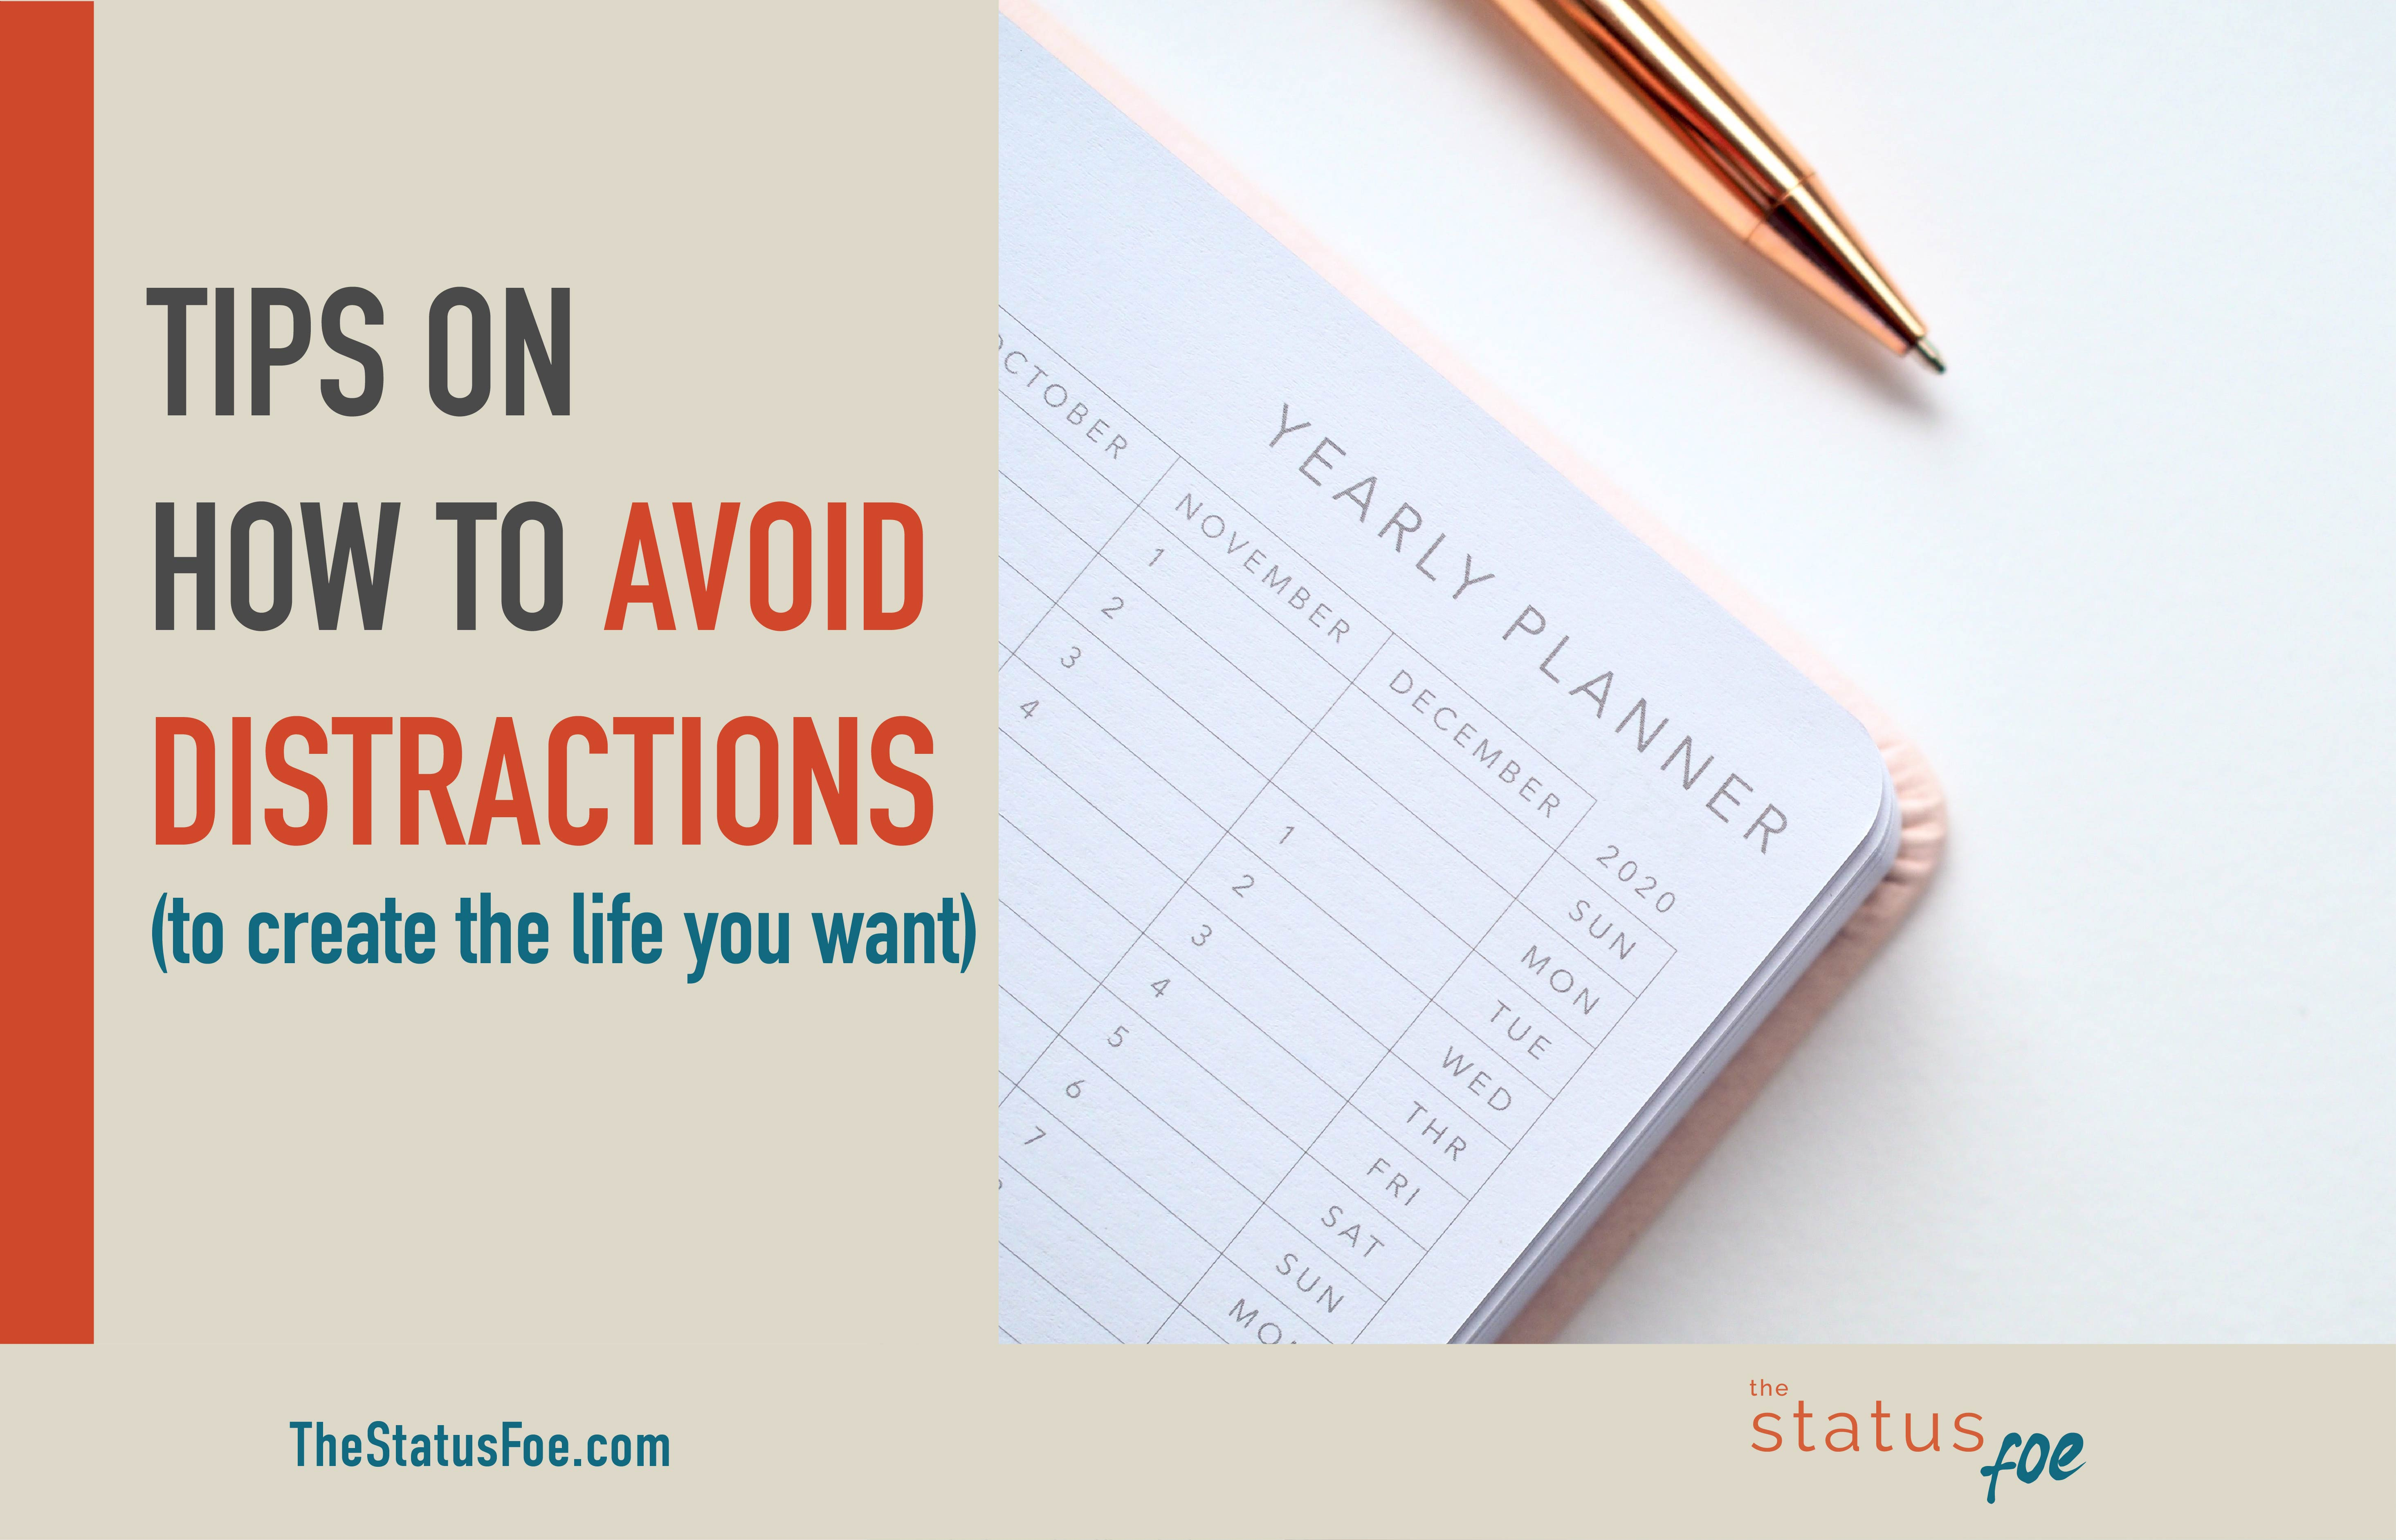 Tips on how to avoid distractions (to create the life you want)